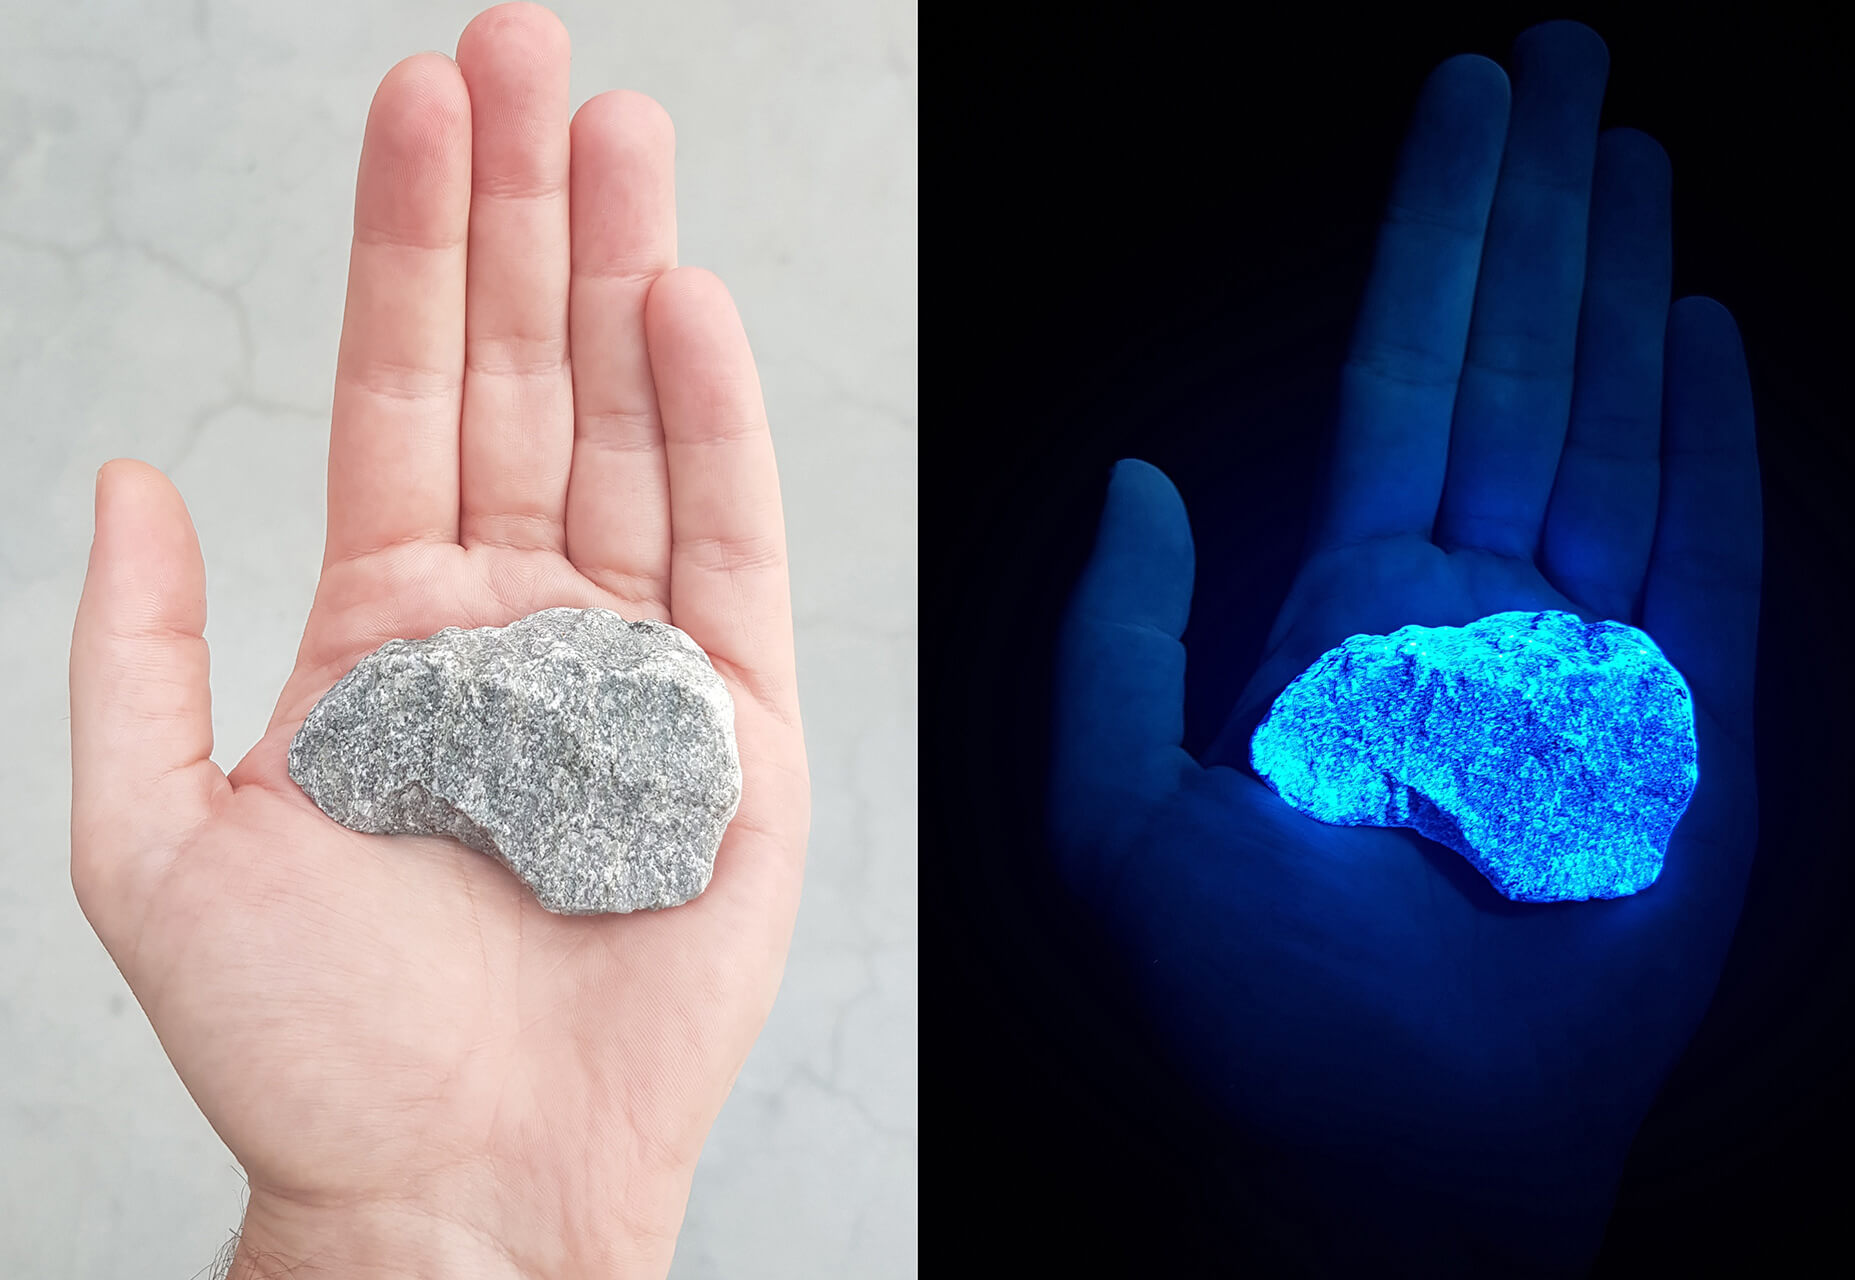 The stones are specially developed by employing invisible ultraviolet light, with fluorescent pigments | Levenslicht | Daan Roosegaarde | Studio Roosegaarde| STIRworld